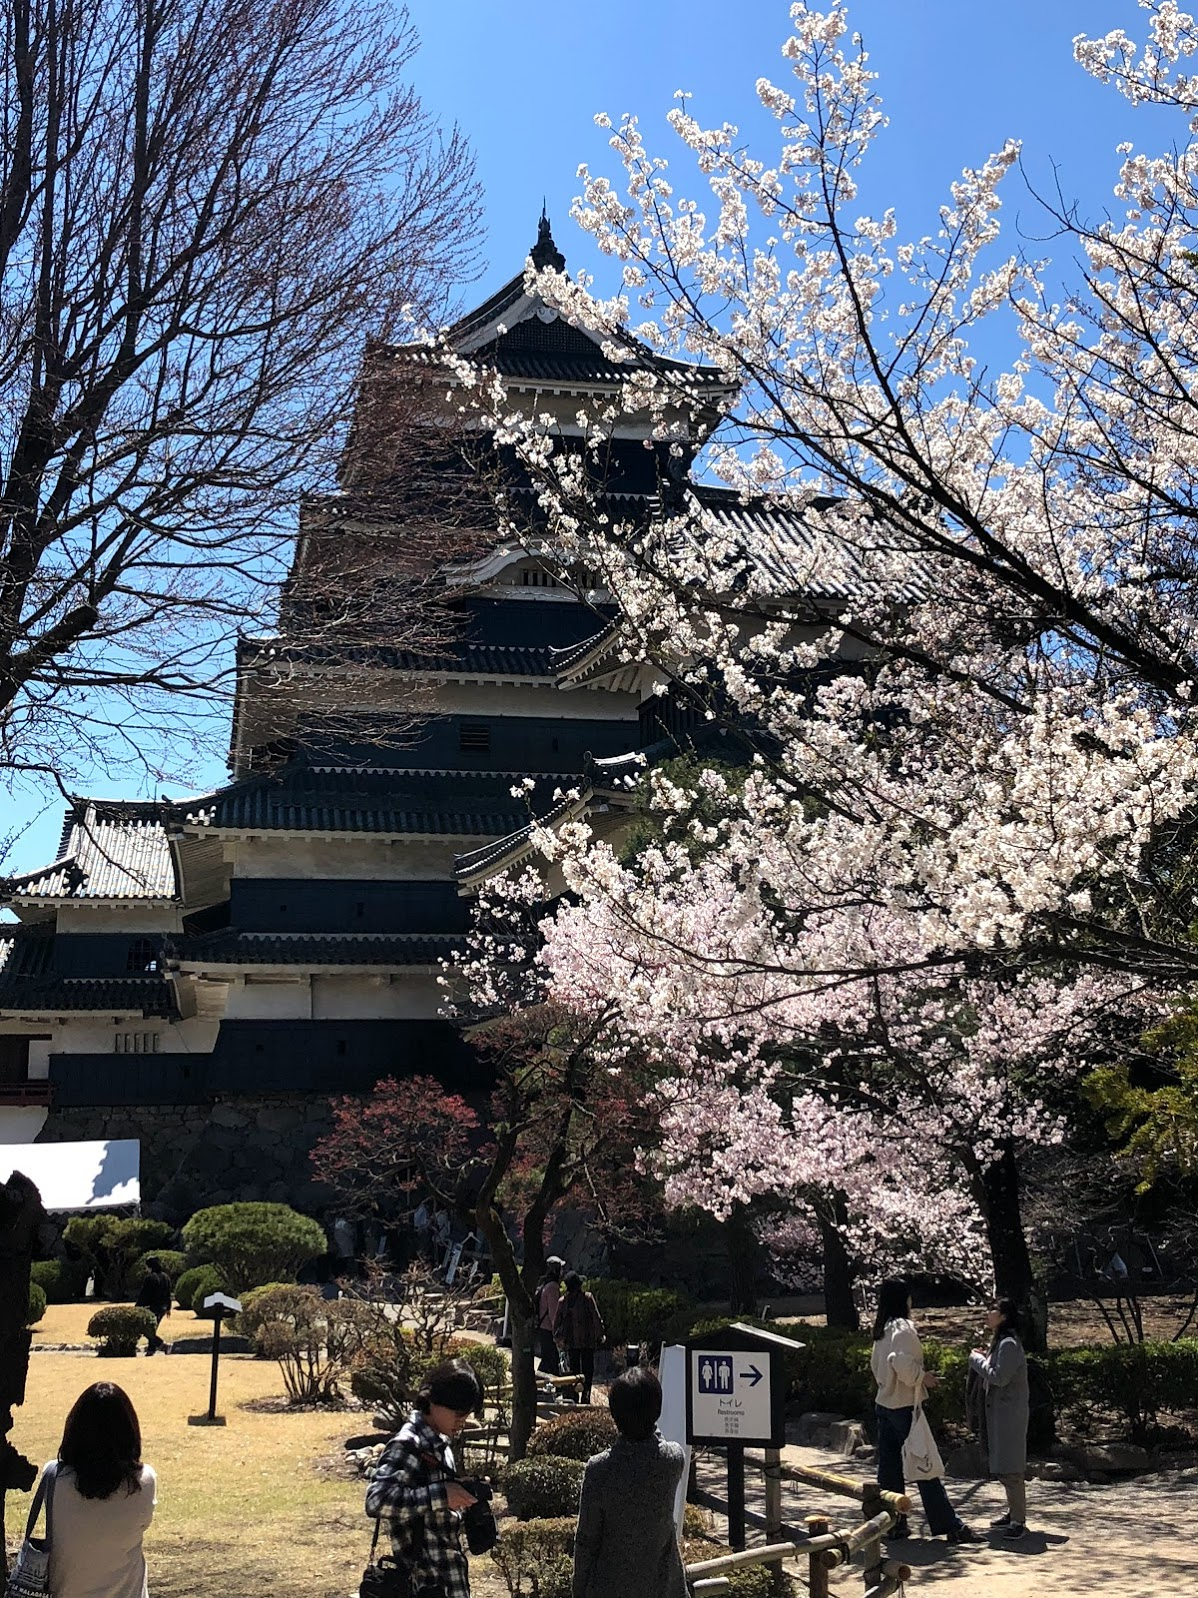 It was great to see the castle during cherry blossom season.